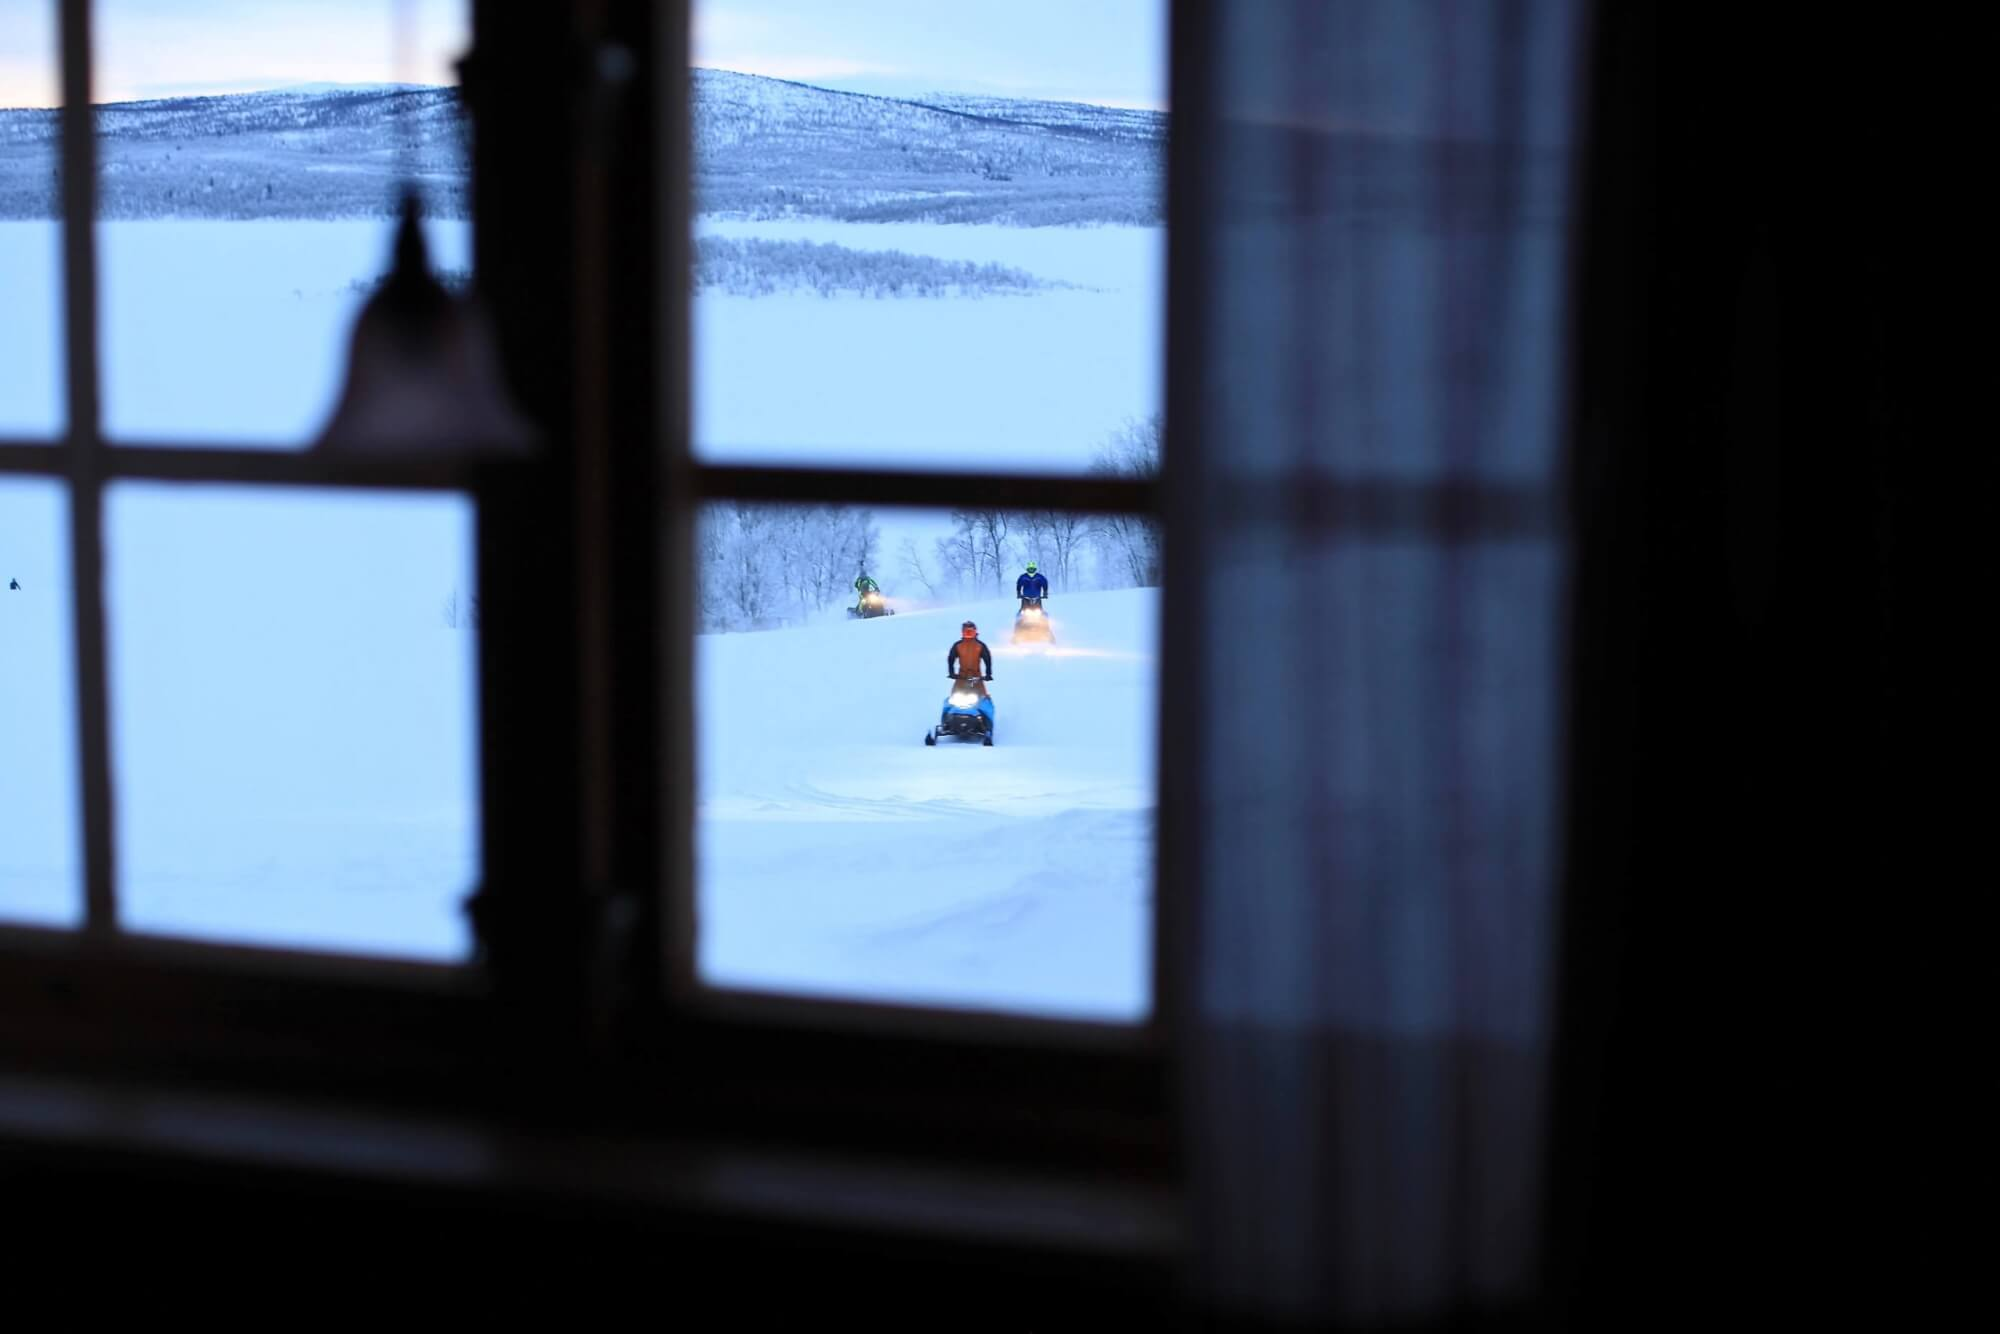 Cold journey through the culinary spaces of northern Sweden